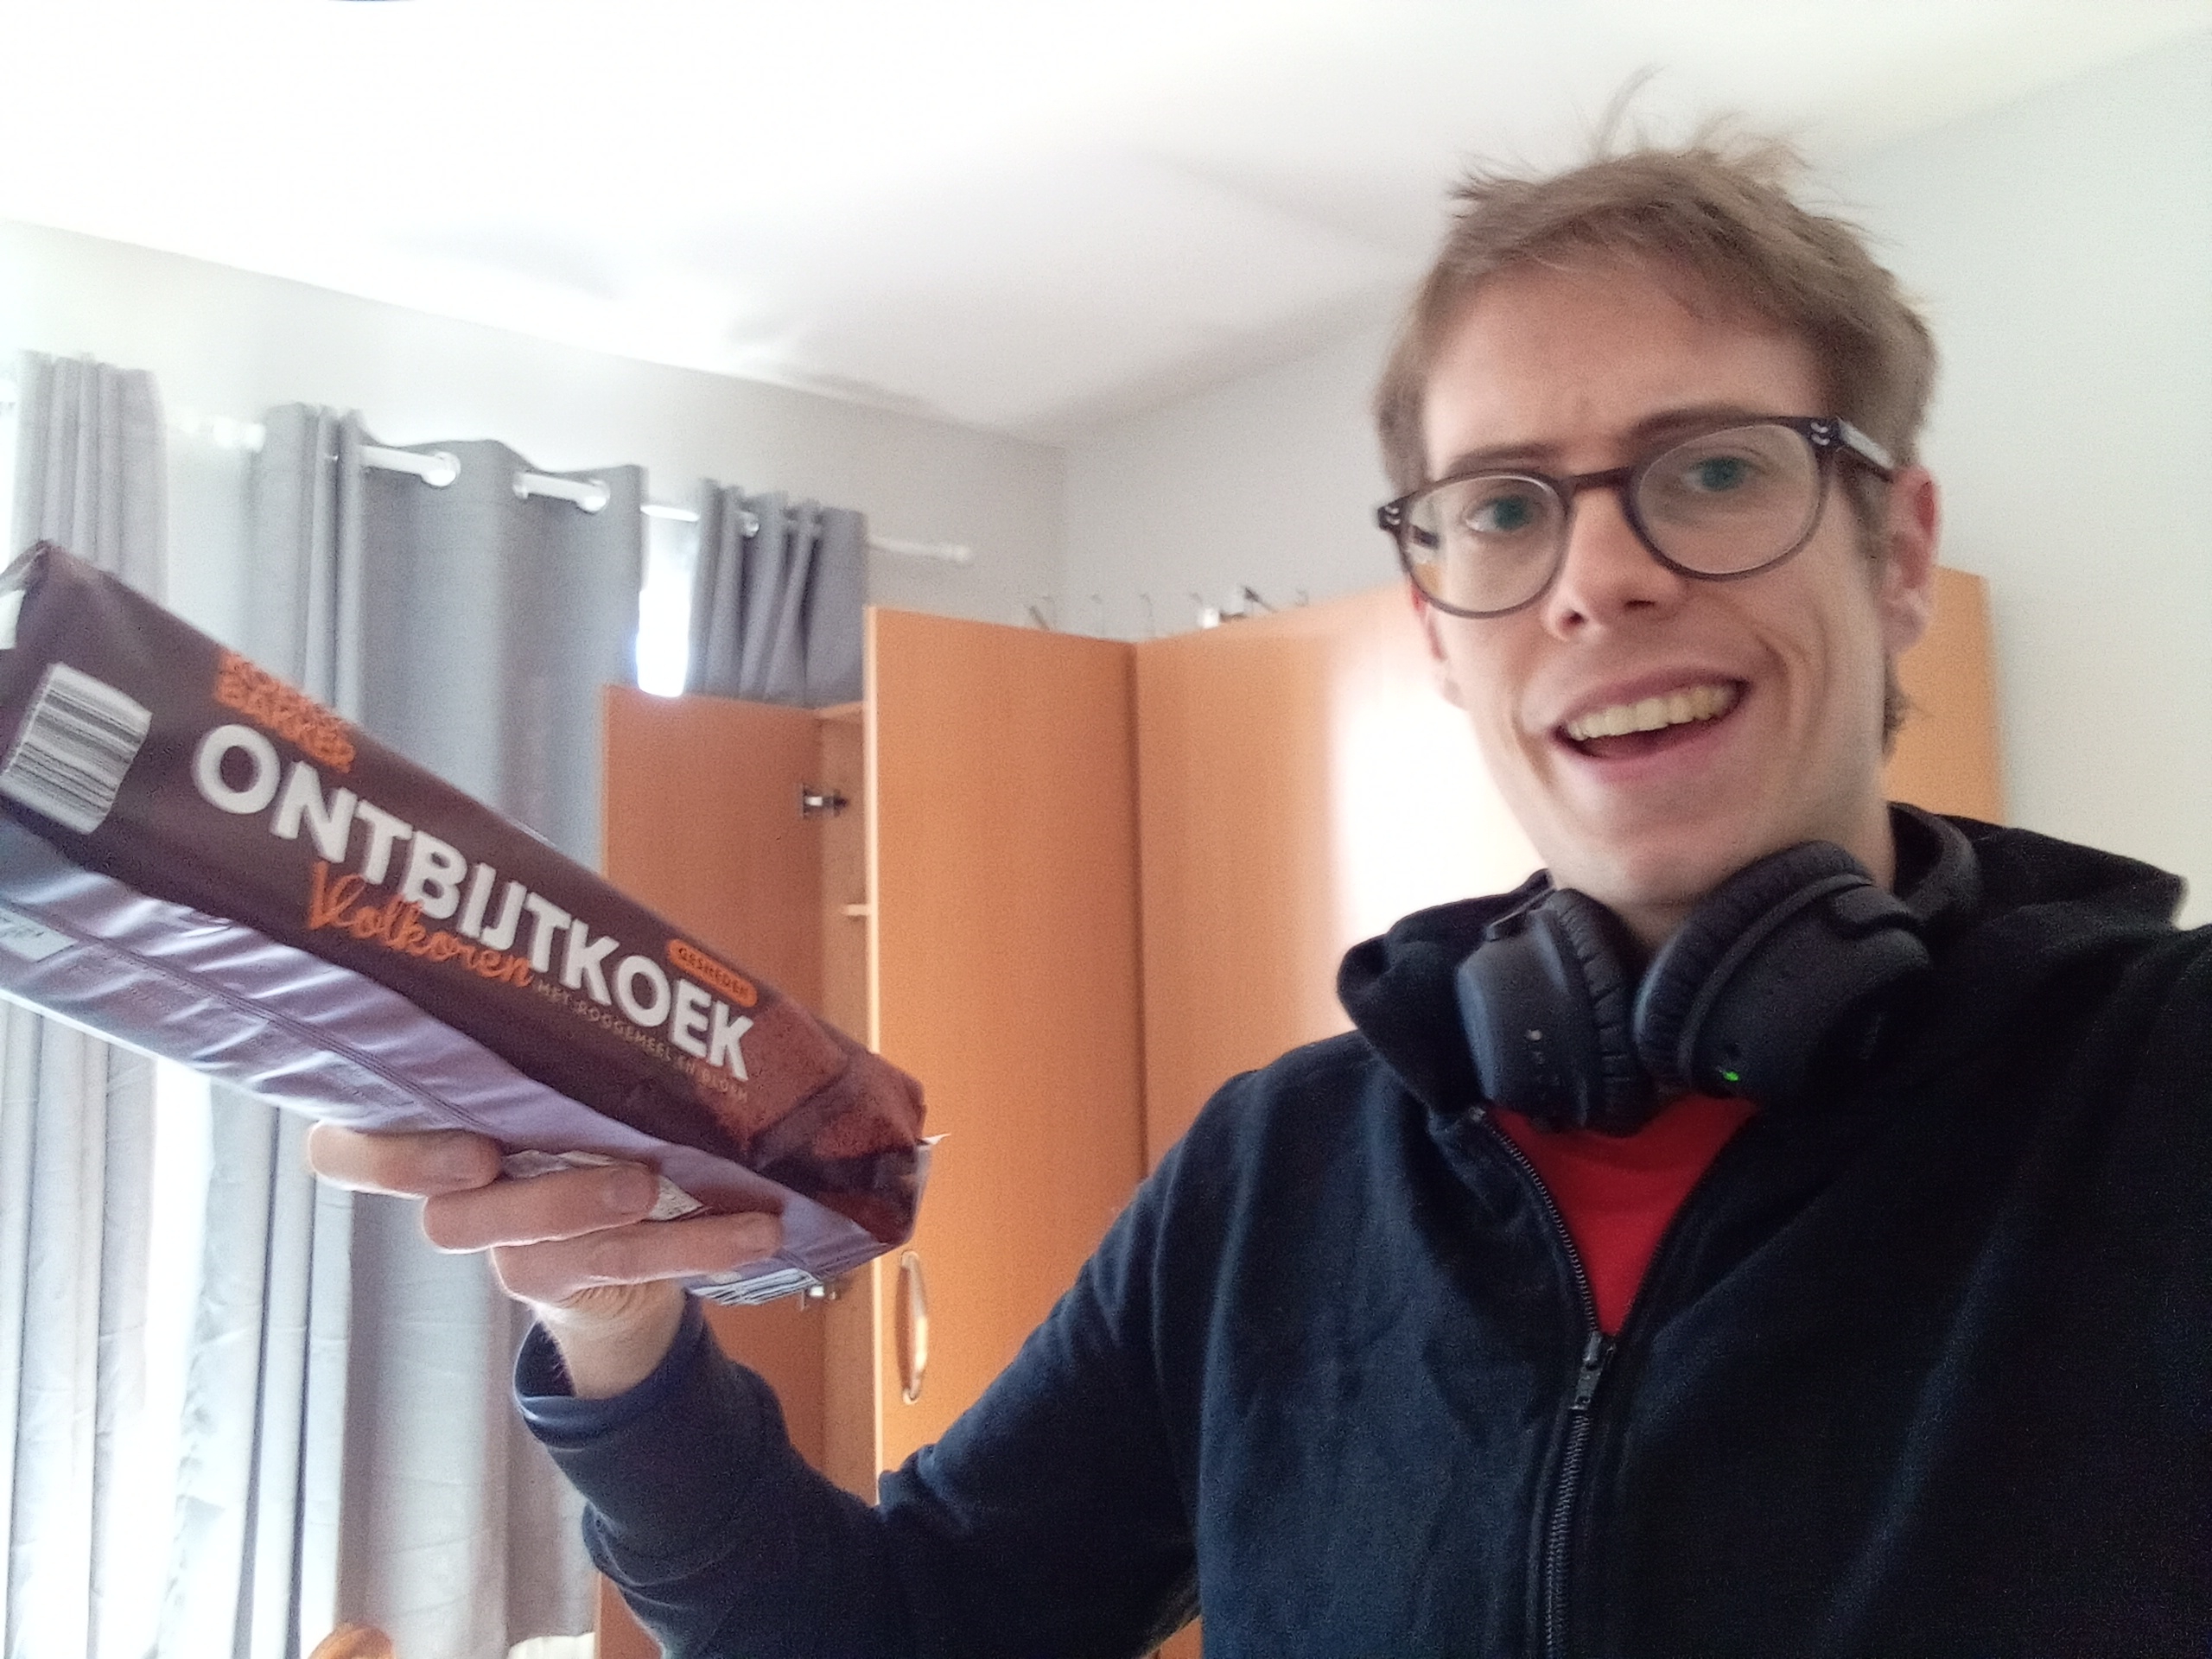 A white man (Jorik) wearing glasses and headphones around his neck. He is also wearing a black hoodie and red t-shirt. He is holding up a packet of Ontbijtkoek and wears a quizzical expression.